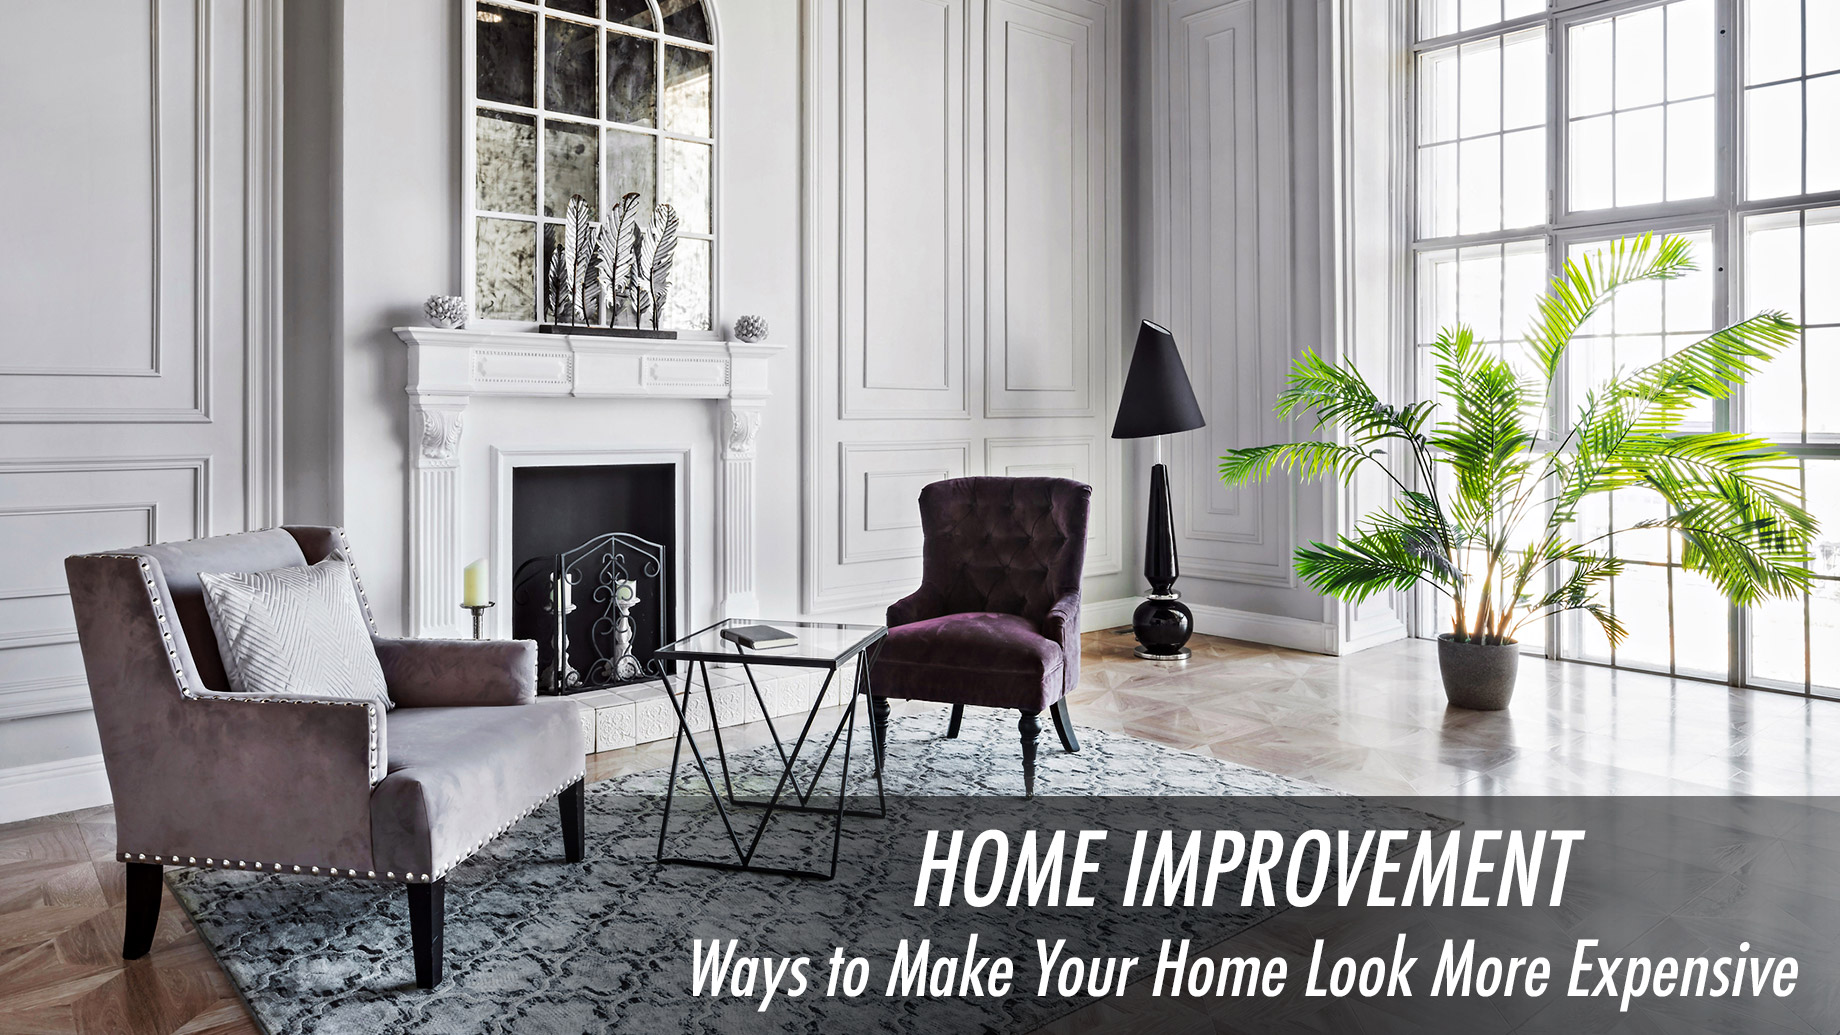 Home Improvement - Ways to Make Your Home Look More Expensive